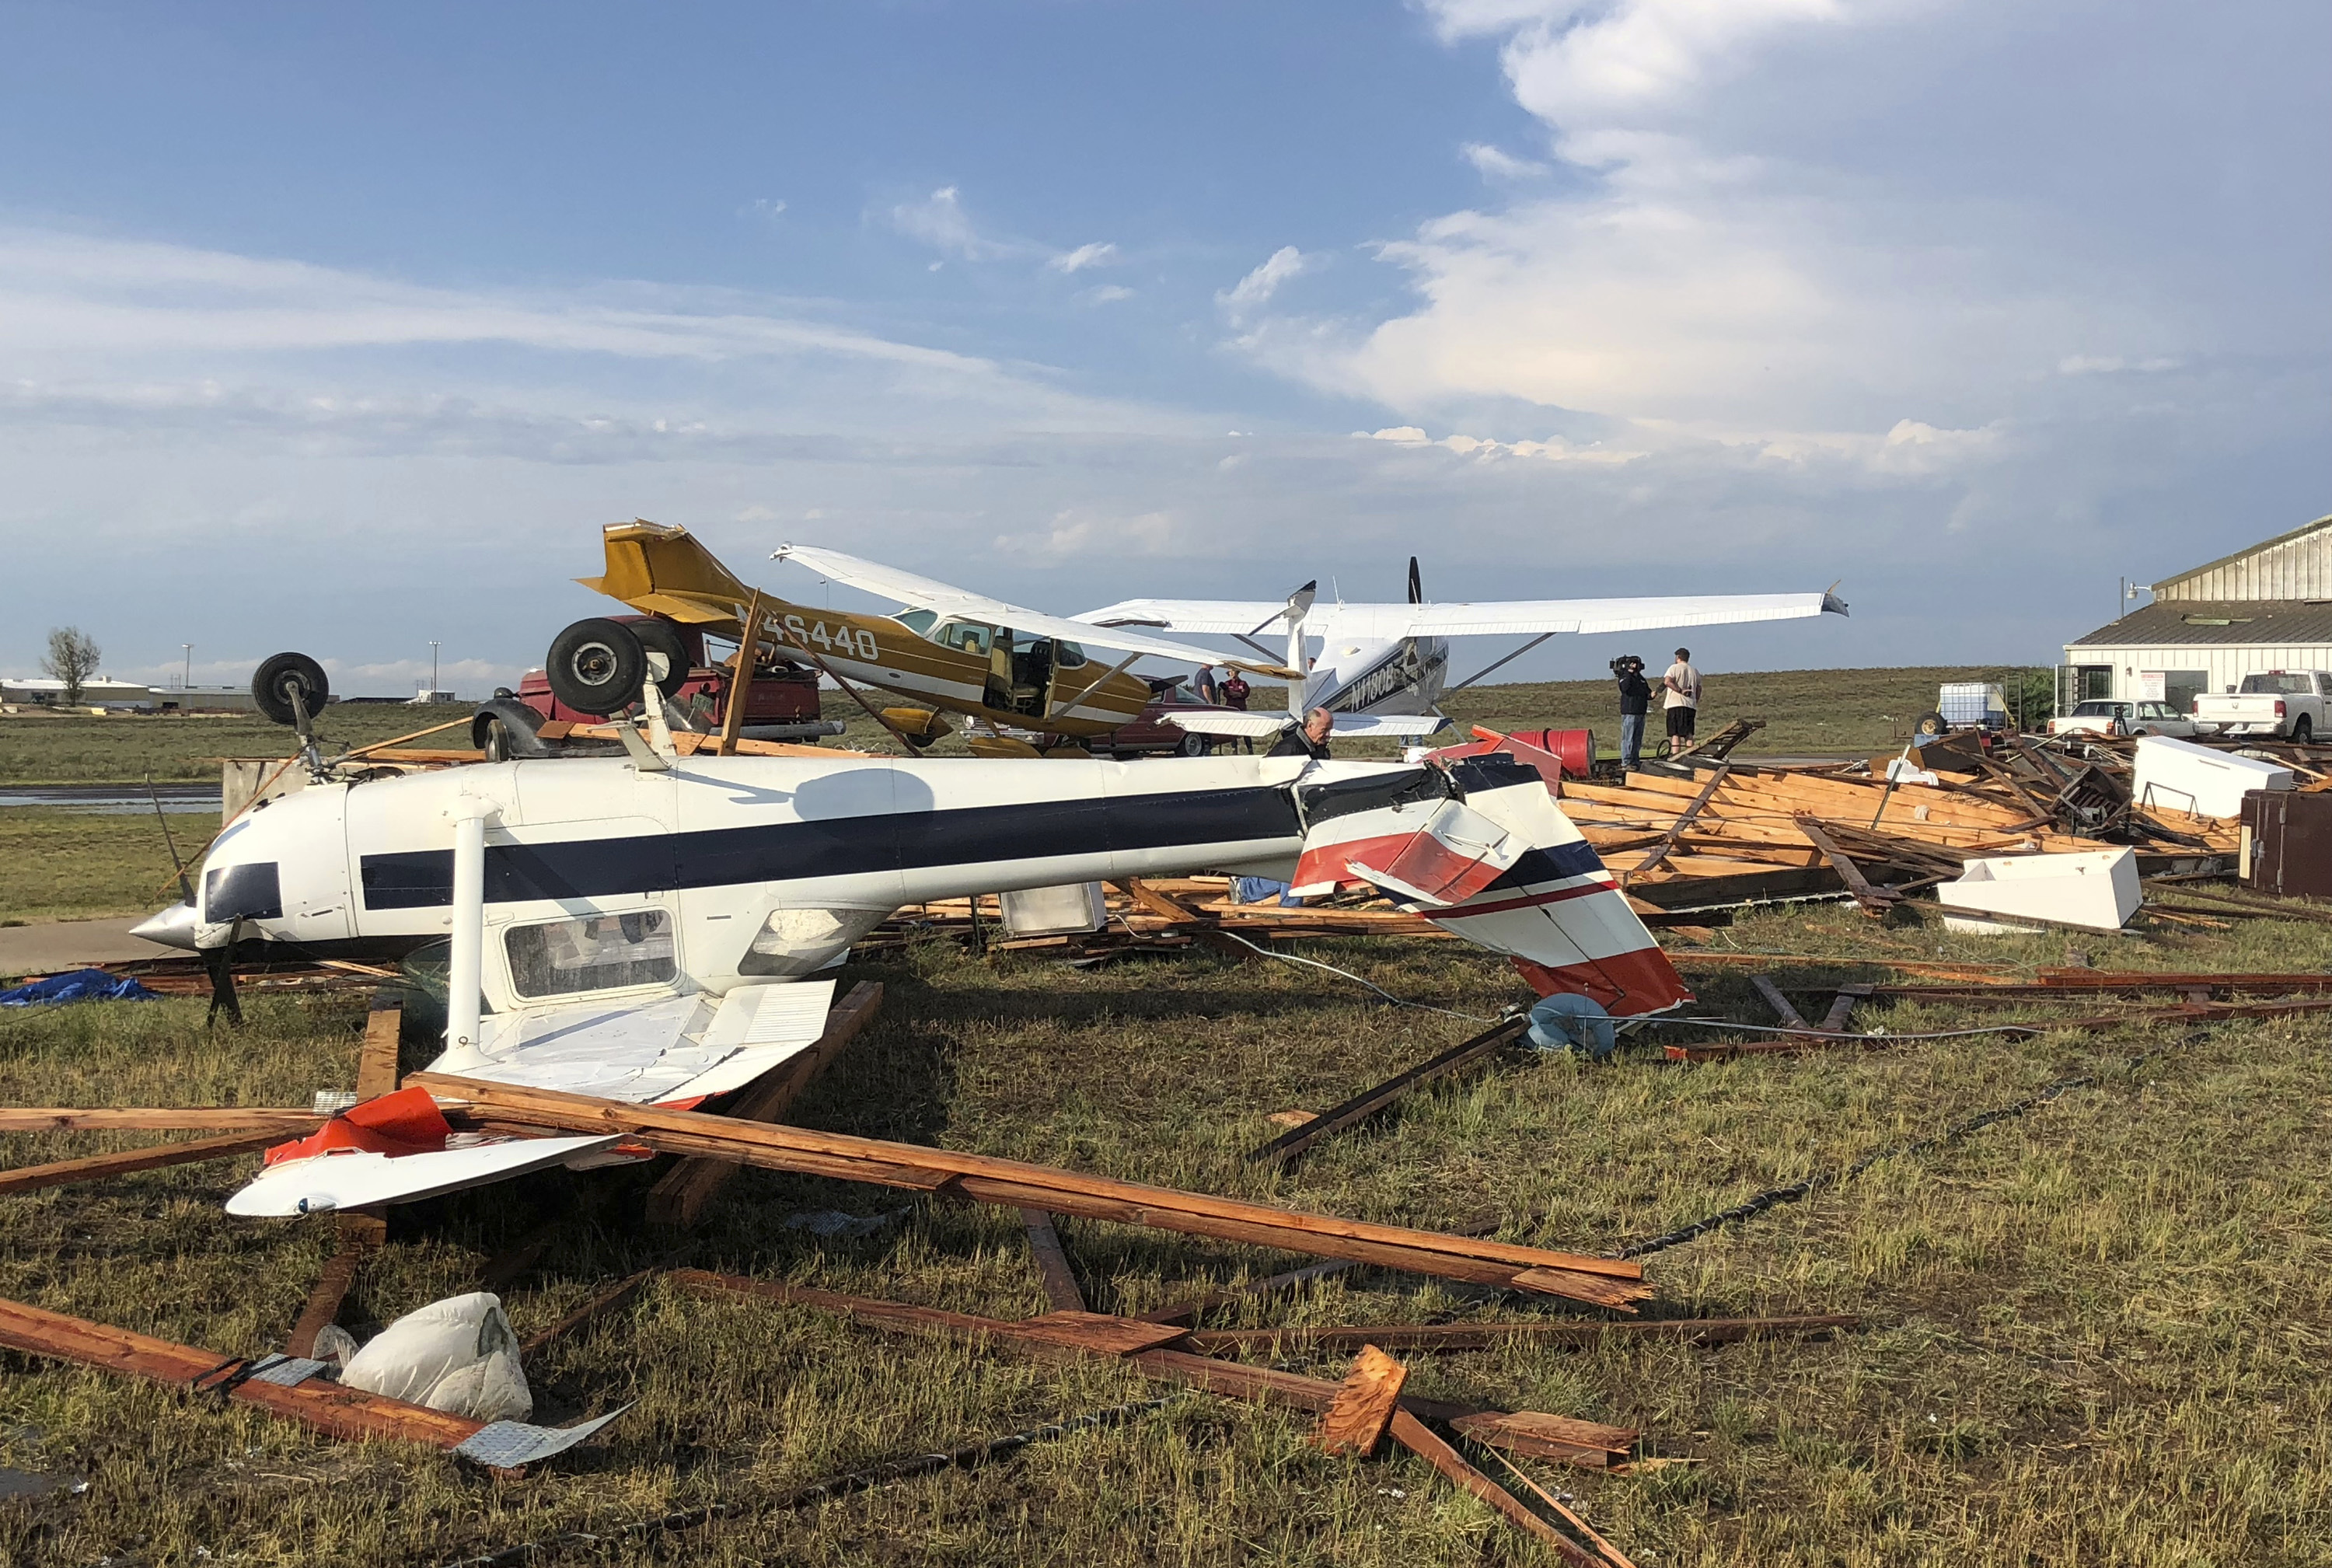 <p>This Sunday, July 29, 2018, photo provided by Colorado Sen. Cory Gardner shows damage from a storm just after it hit the area near Brush, Colo. People on the plains of northeastern Colorado were cleaning up Monday from a powerful storm that swept through the state, ripping off roofs, flipping trucks and damaging crops. No serious injuries were reported. </p>